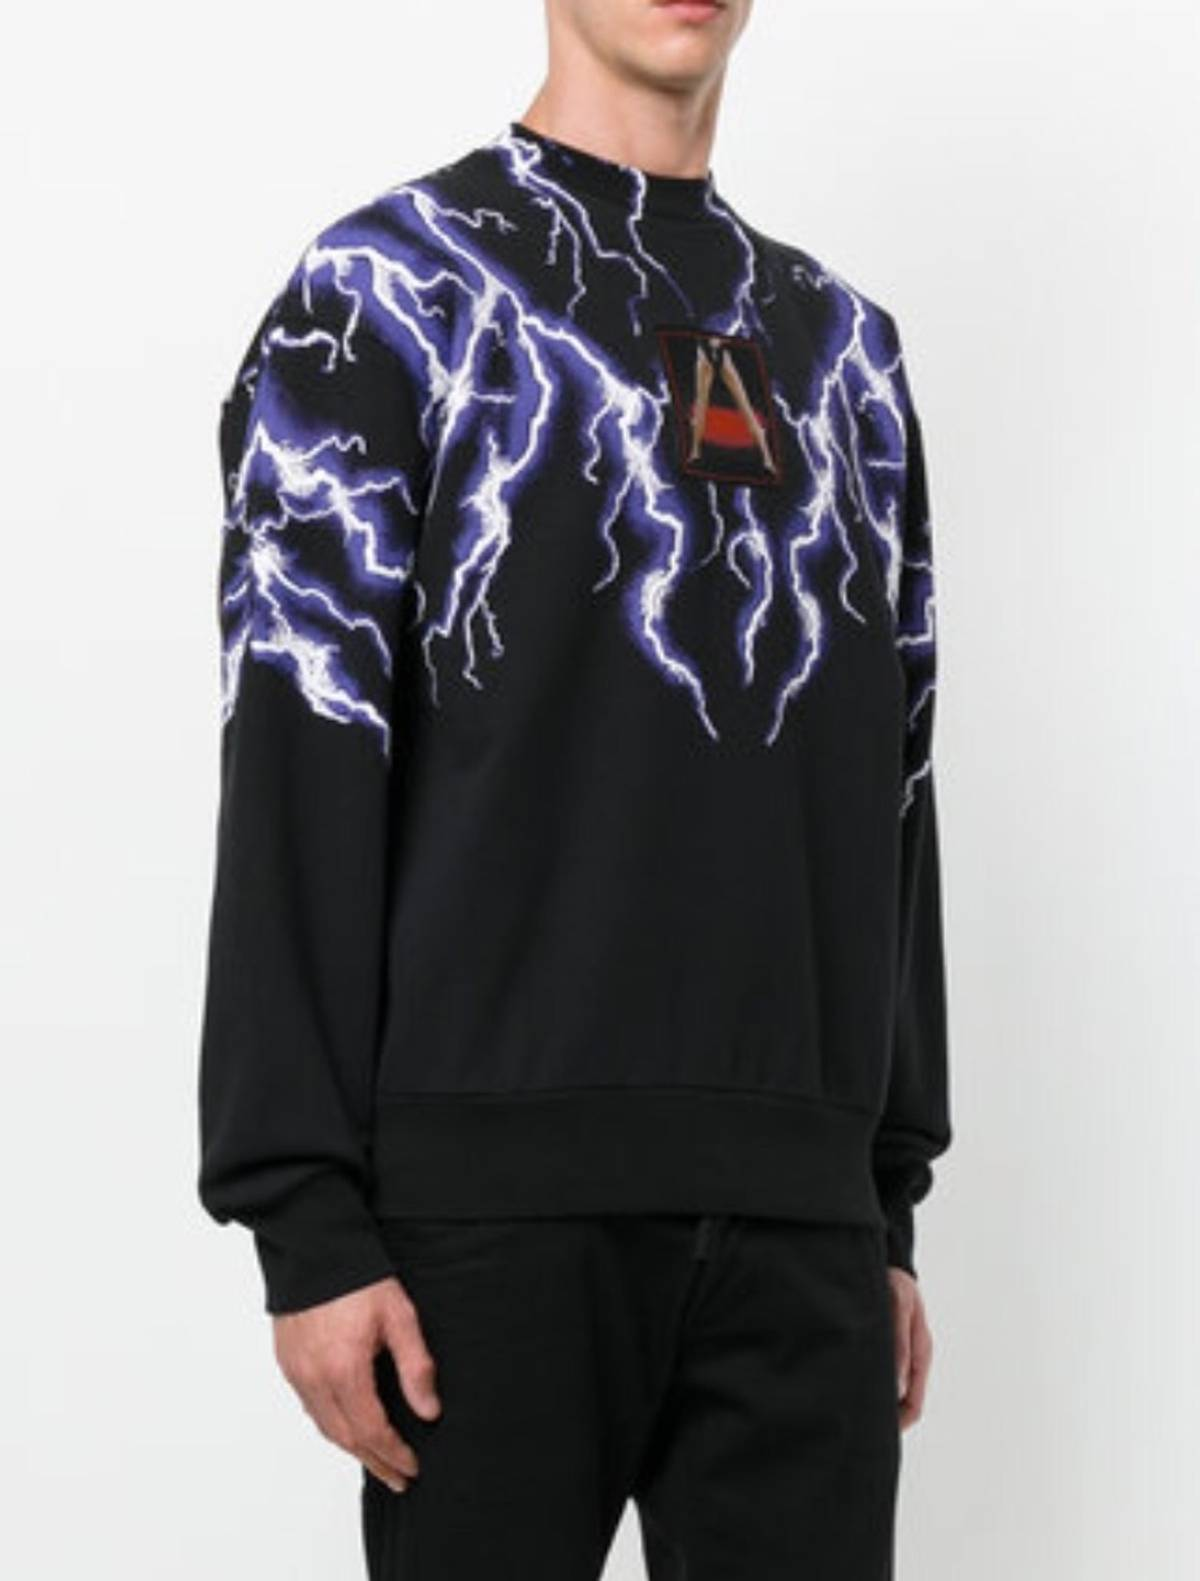 3f6be32b Alexander Wang Lightning Collage Sweatshirt Brandnew With Tags | Grailed